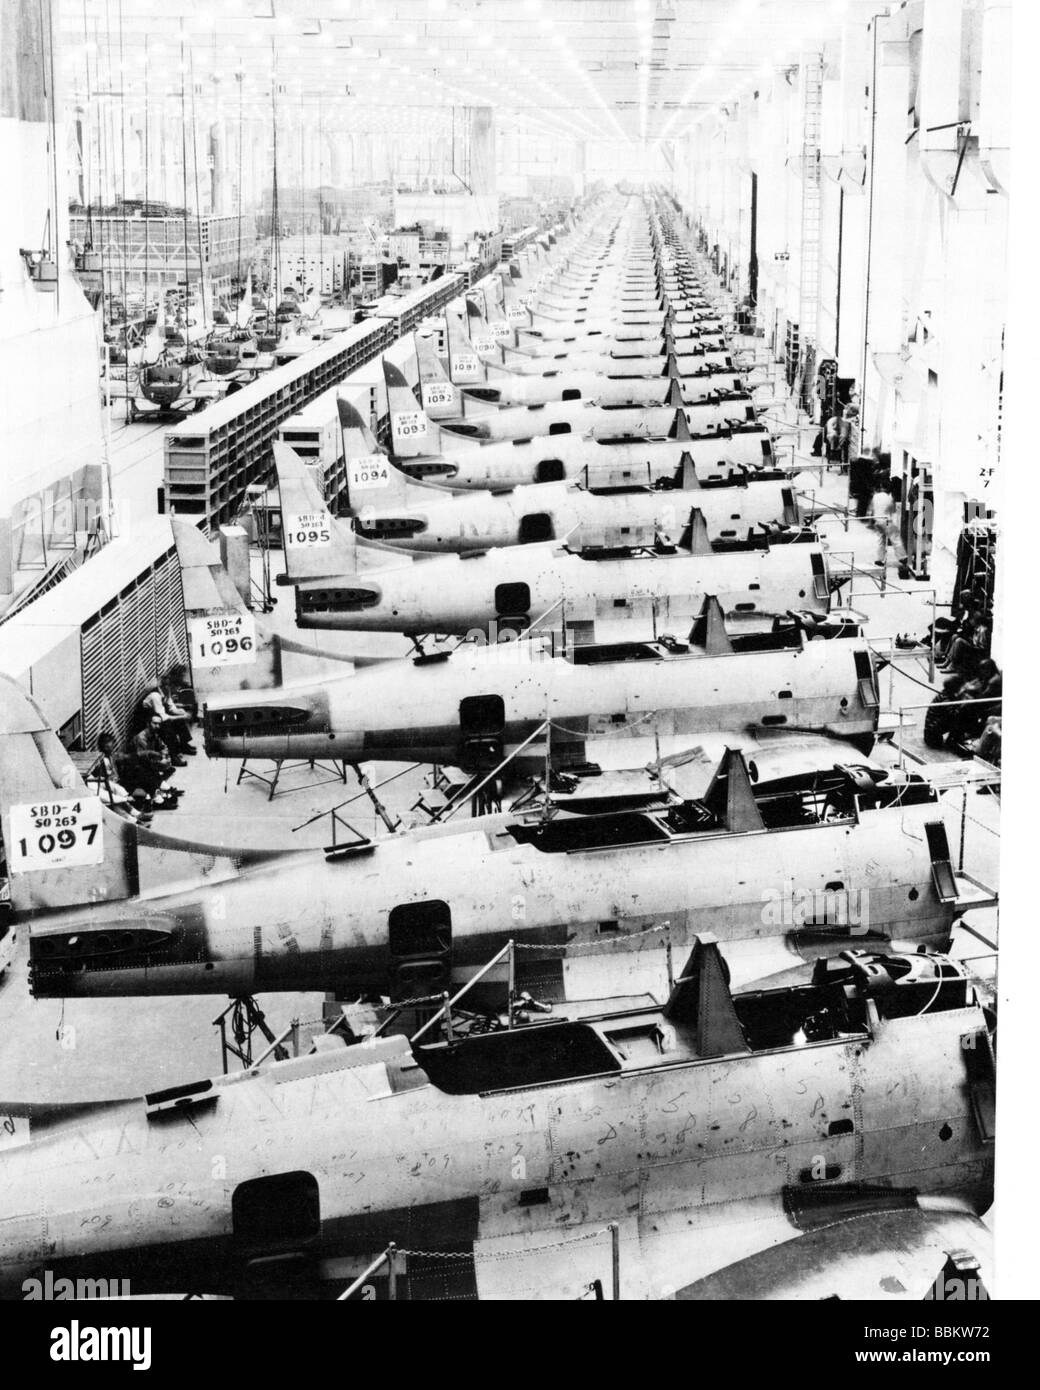 MASS PRODUCTION of Dauntless divebombers at the Douglas Aircraft factory in California in 1944 - Stock Image